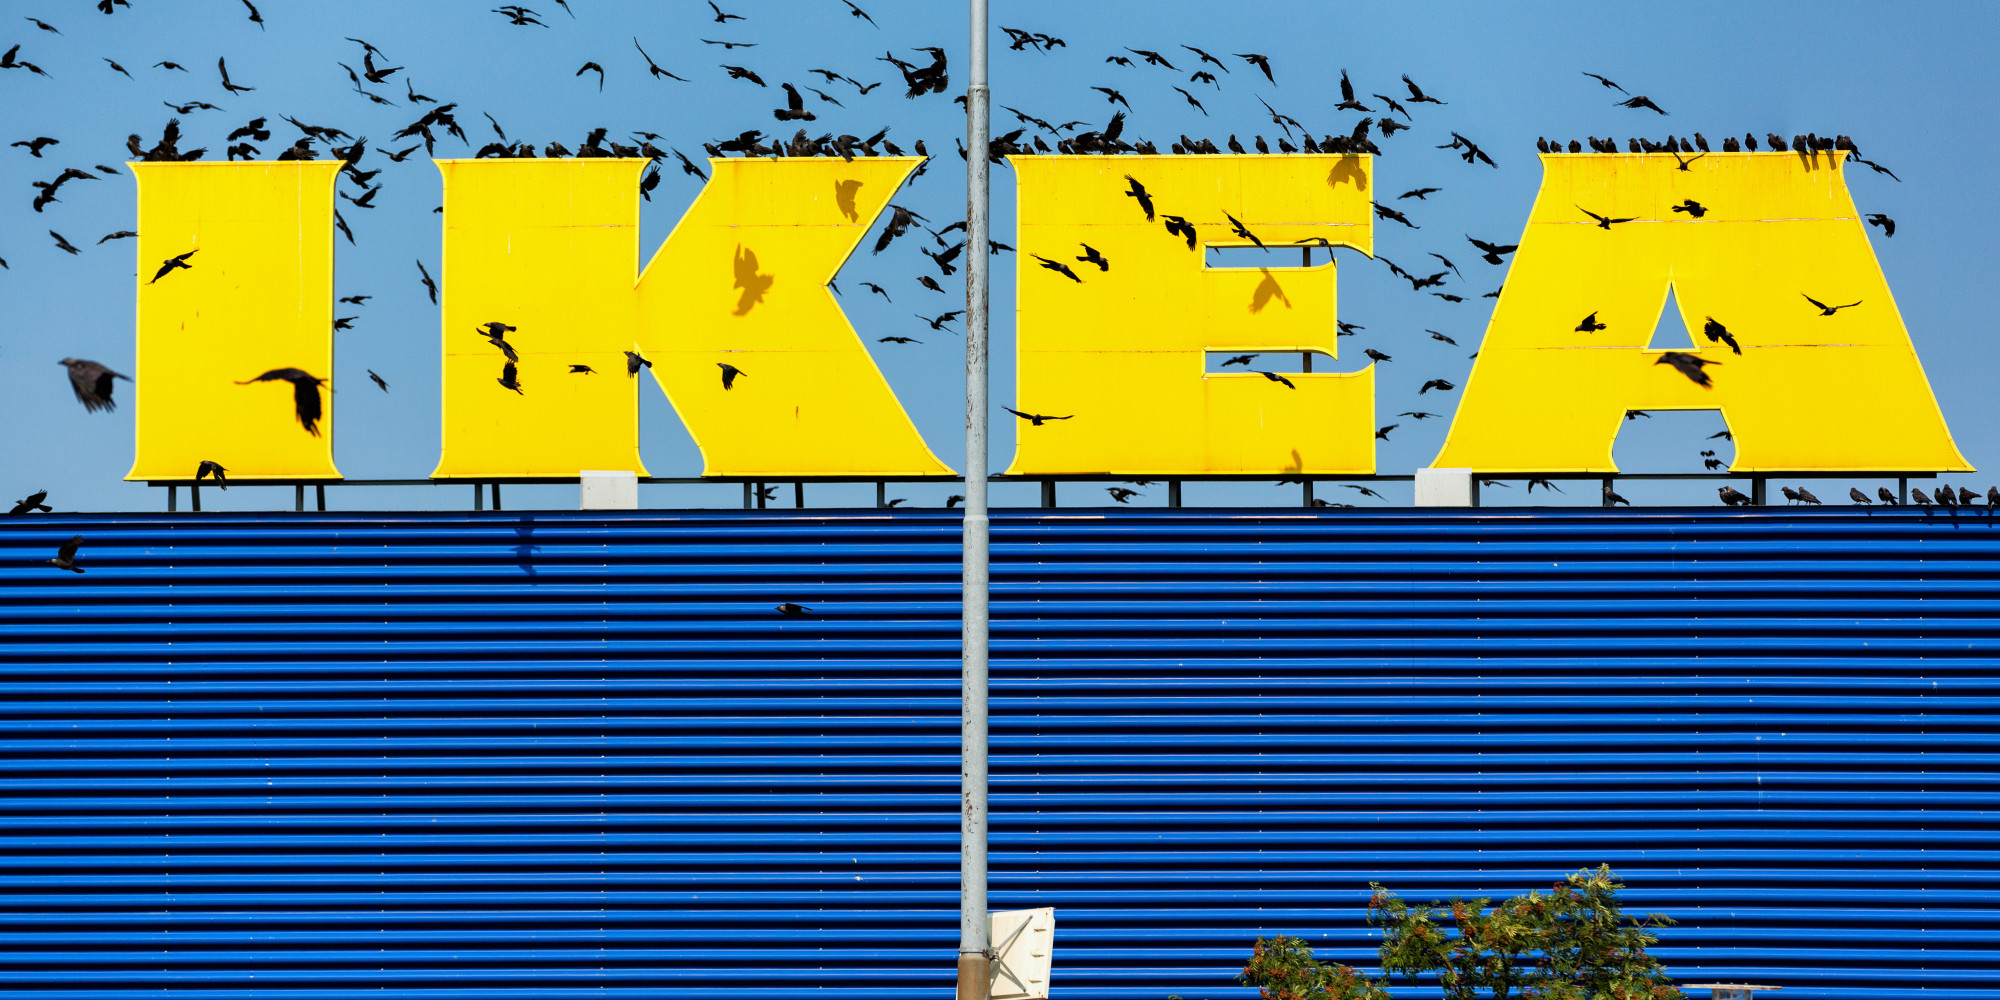 ikea uk store locations to increase with smaller click and collect high street outlets huffpost uk. Black Bedroom Furniture Sets. Home Design Ideas